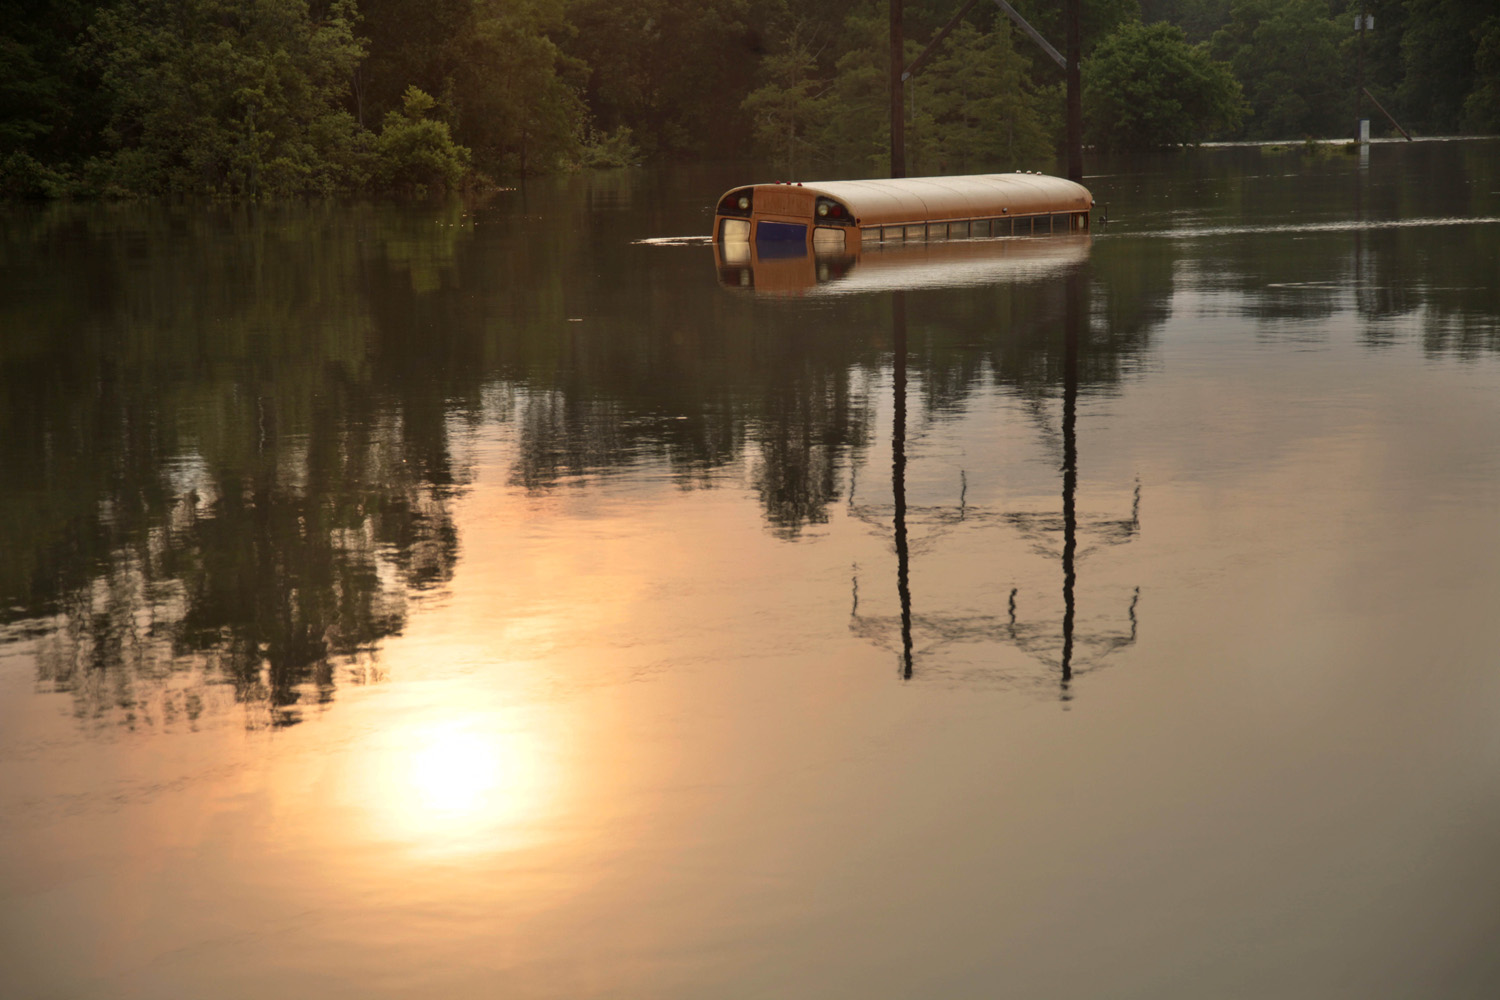 May 20, 2011. An old school bus sits in floodwaters from the rising Mississippi River in St. Francisville, Louisiana, where a dozen homes and businesses and several camps were flooded.